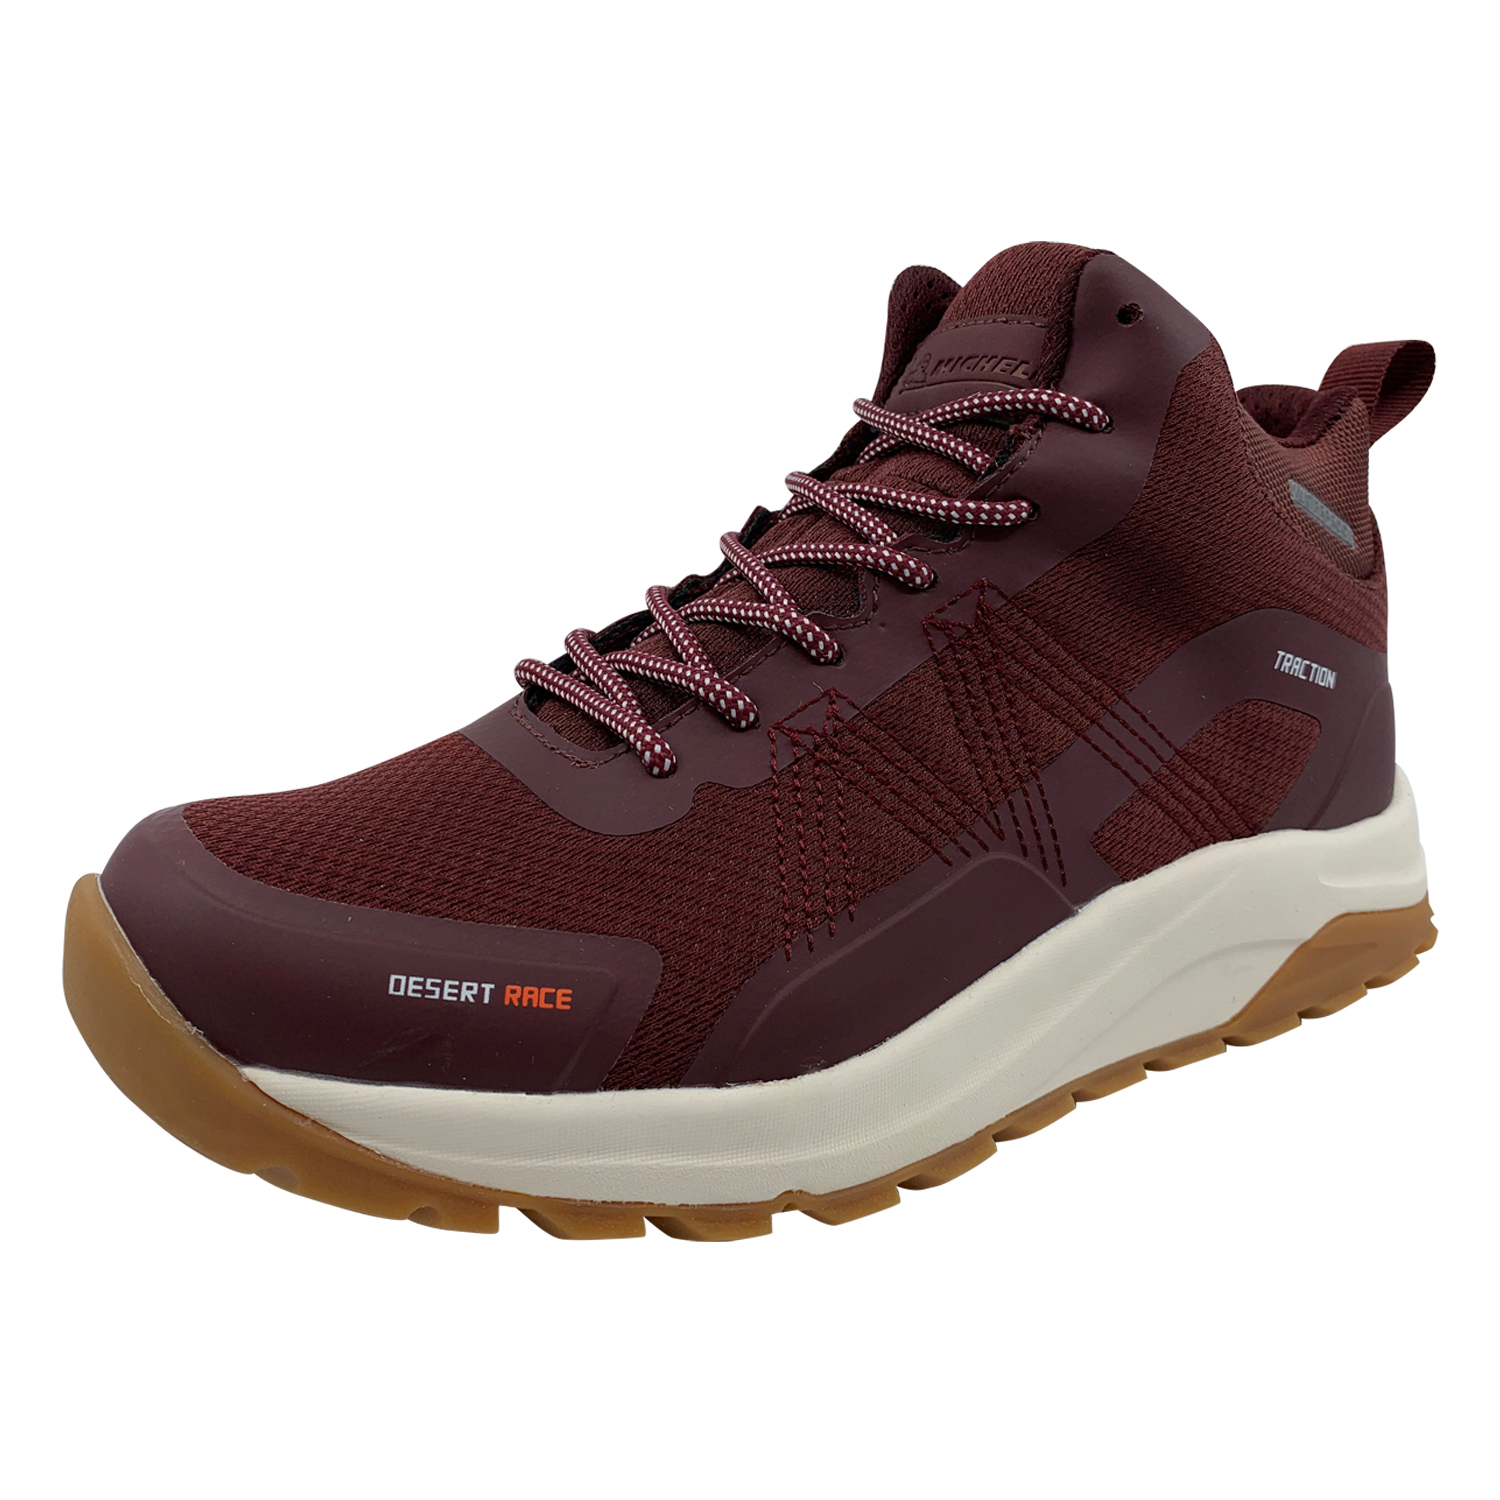 Zapatillas de Hombre Desert Race Michelin Footwear Waterproof Burdeo